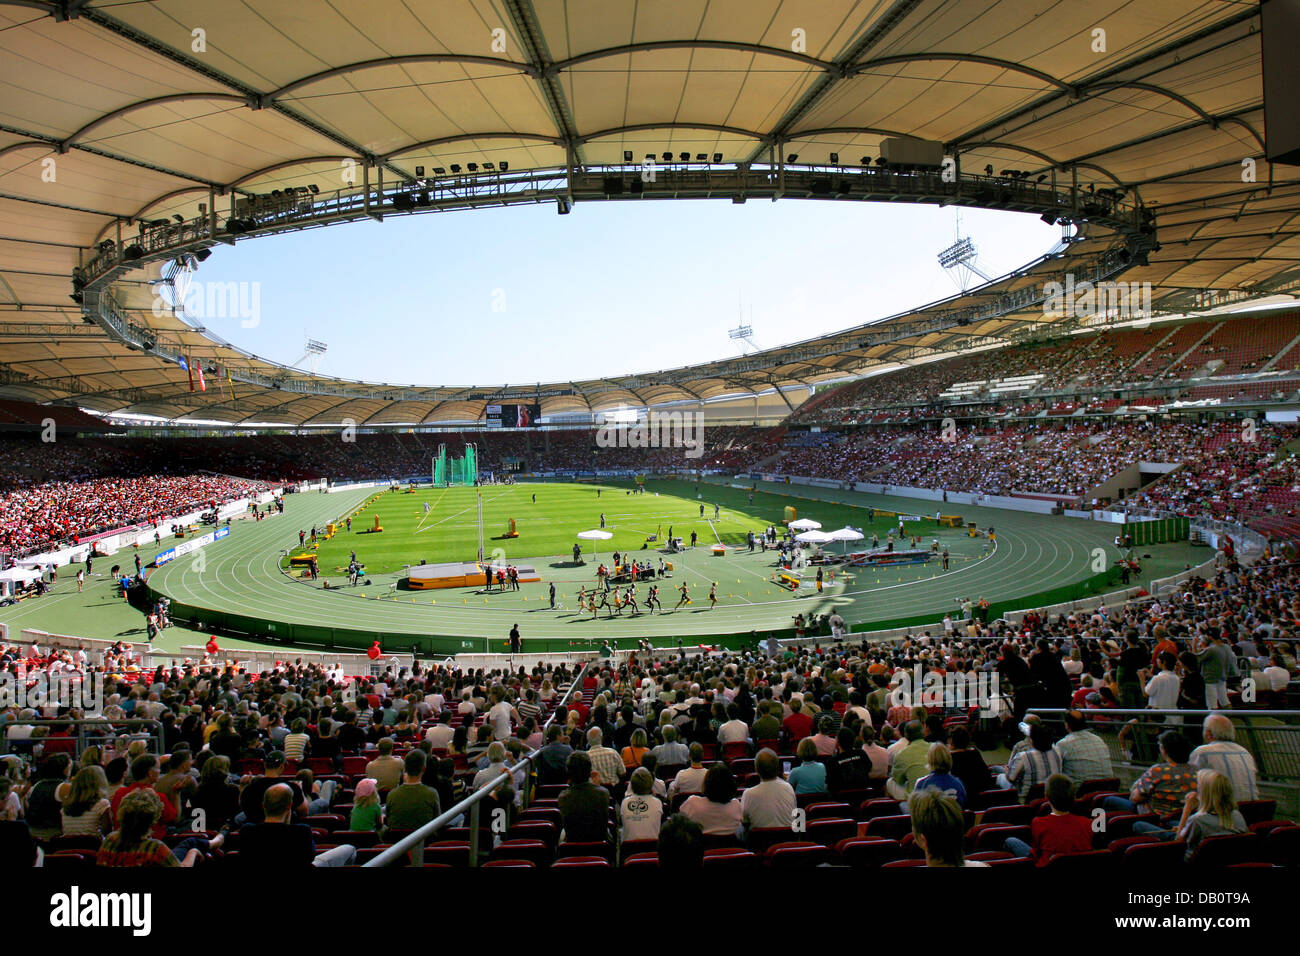 View into the Gottlieb Daimler stadium, venue of the IAAF World Athletics Final in Stuttgart, Germany, 23 September - Stock Image